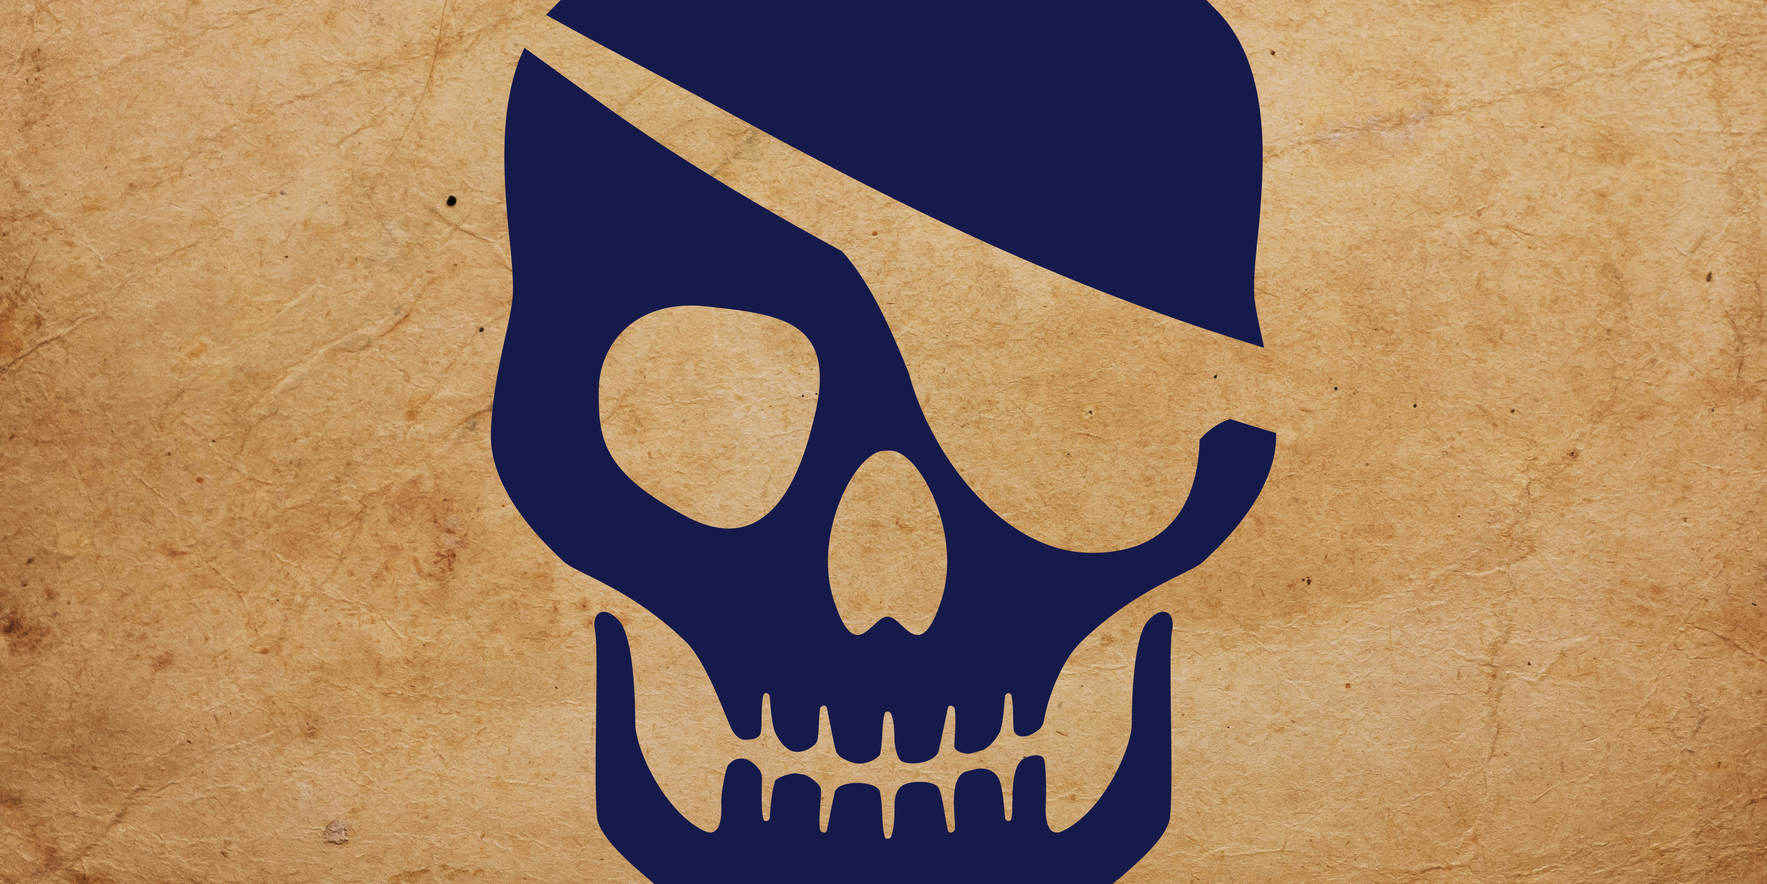 The Fifth Annual Pirate Ball image